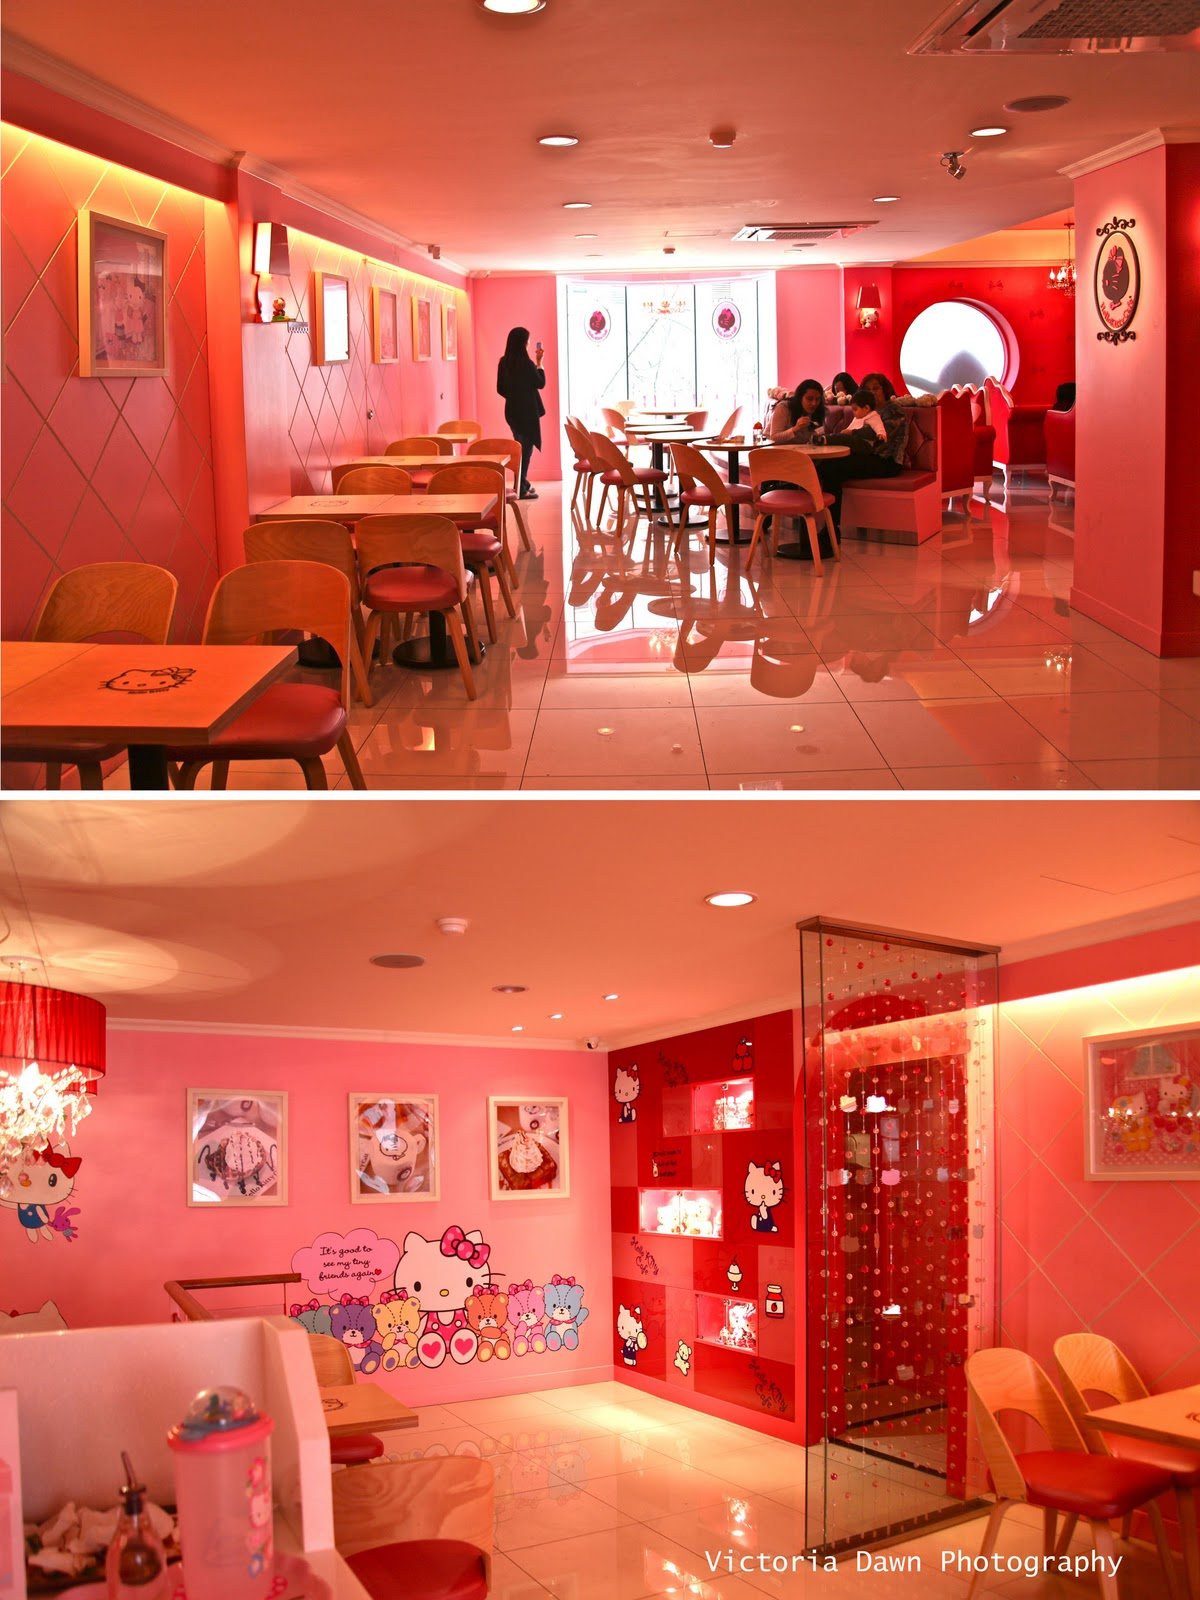 All About Girls Hello Kitty Cafe At Seoul